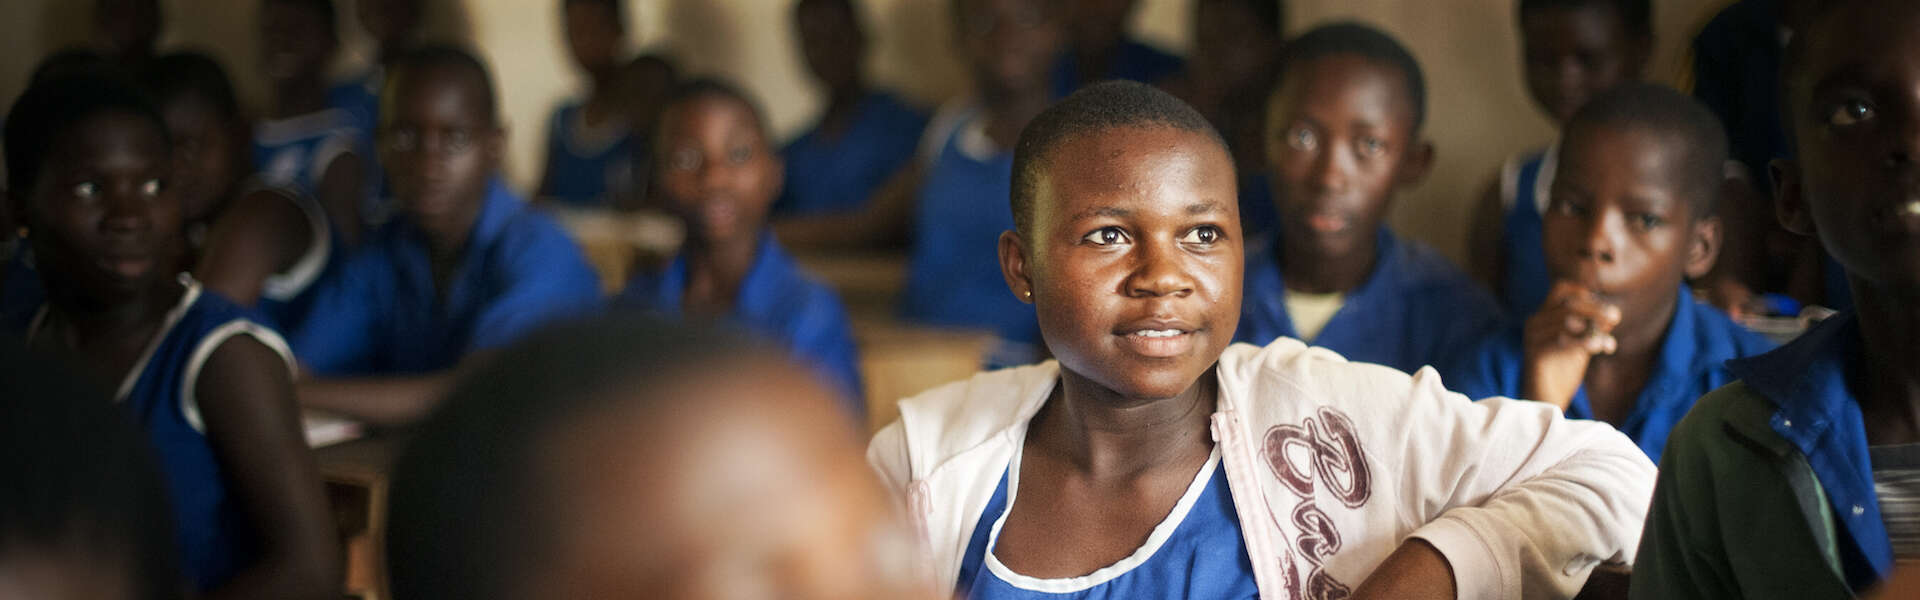 The Most Powerful Weapon for Changing the World: How Microfinance Institutions Can Increase Access to Education, on NextBillion.net.